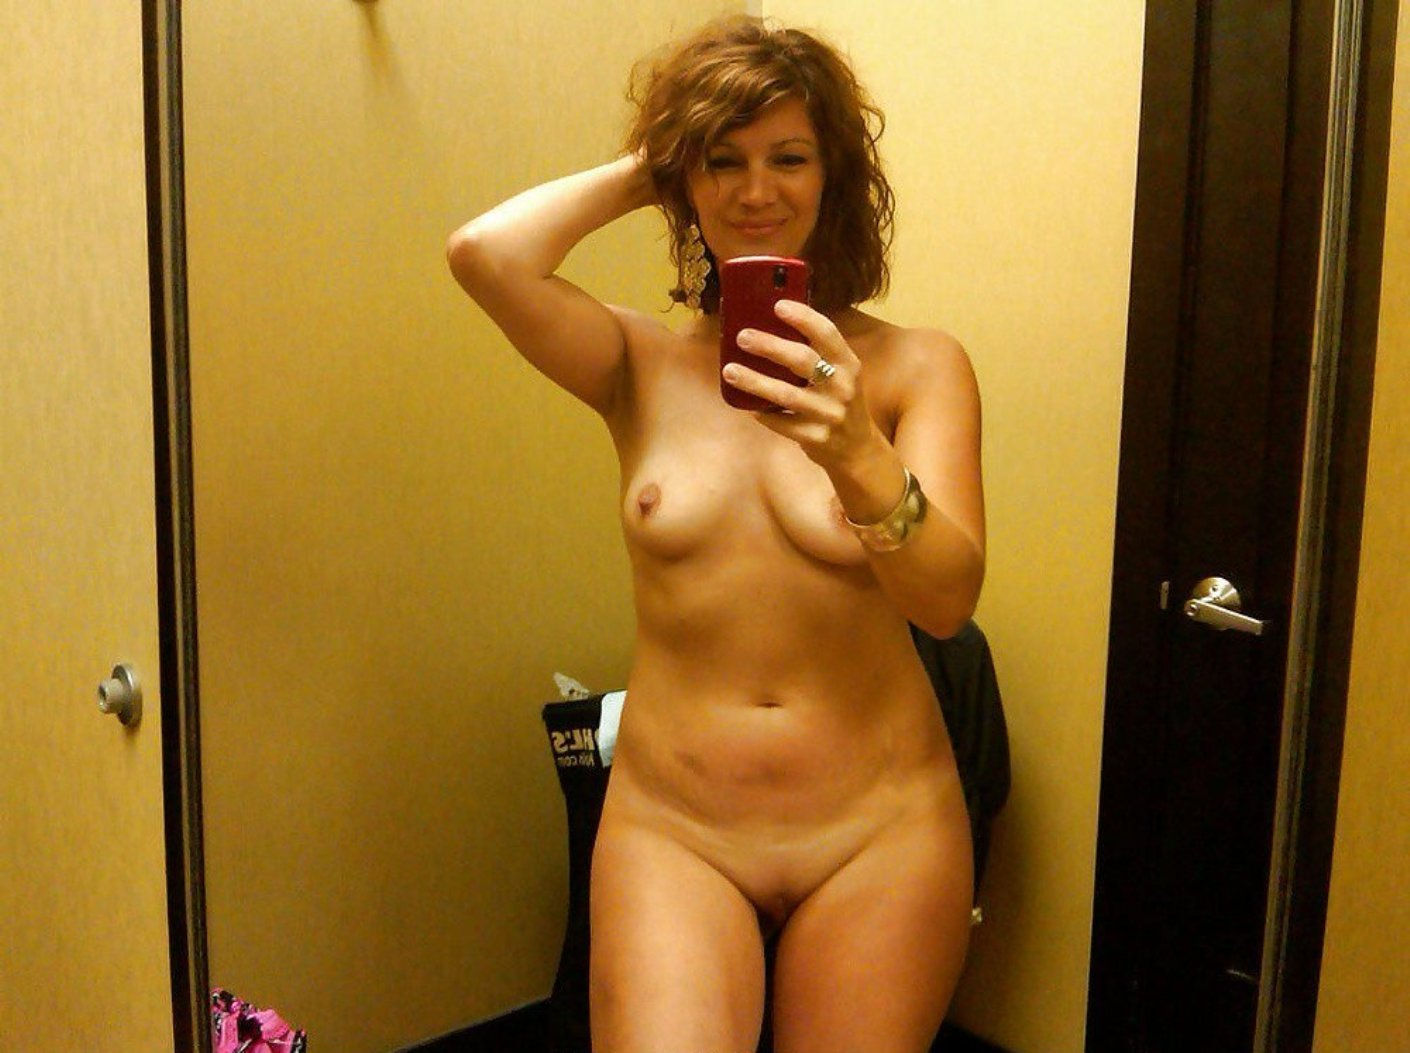 Brunette MILF with small titted takes naked selfie in mirror